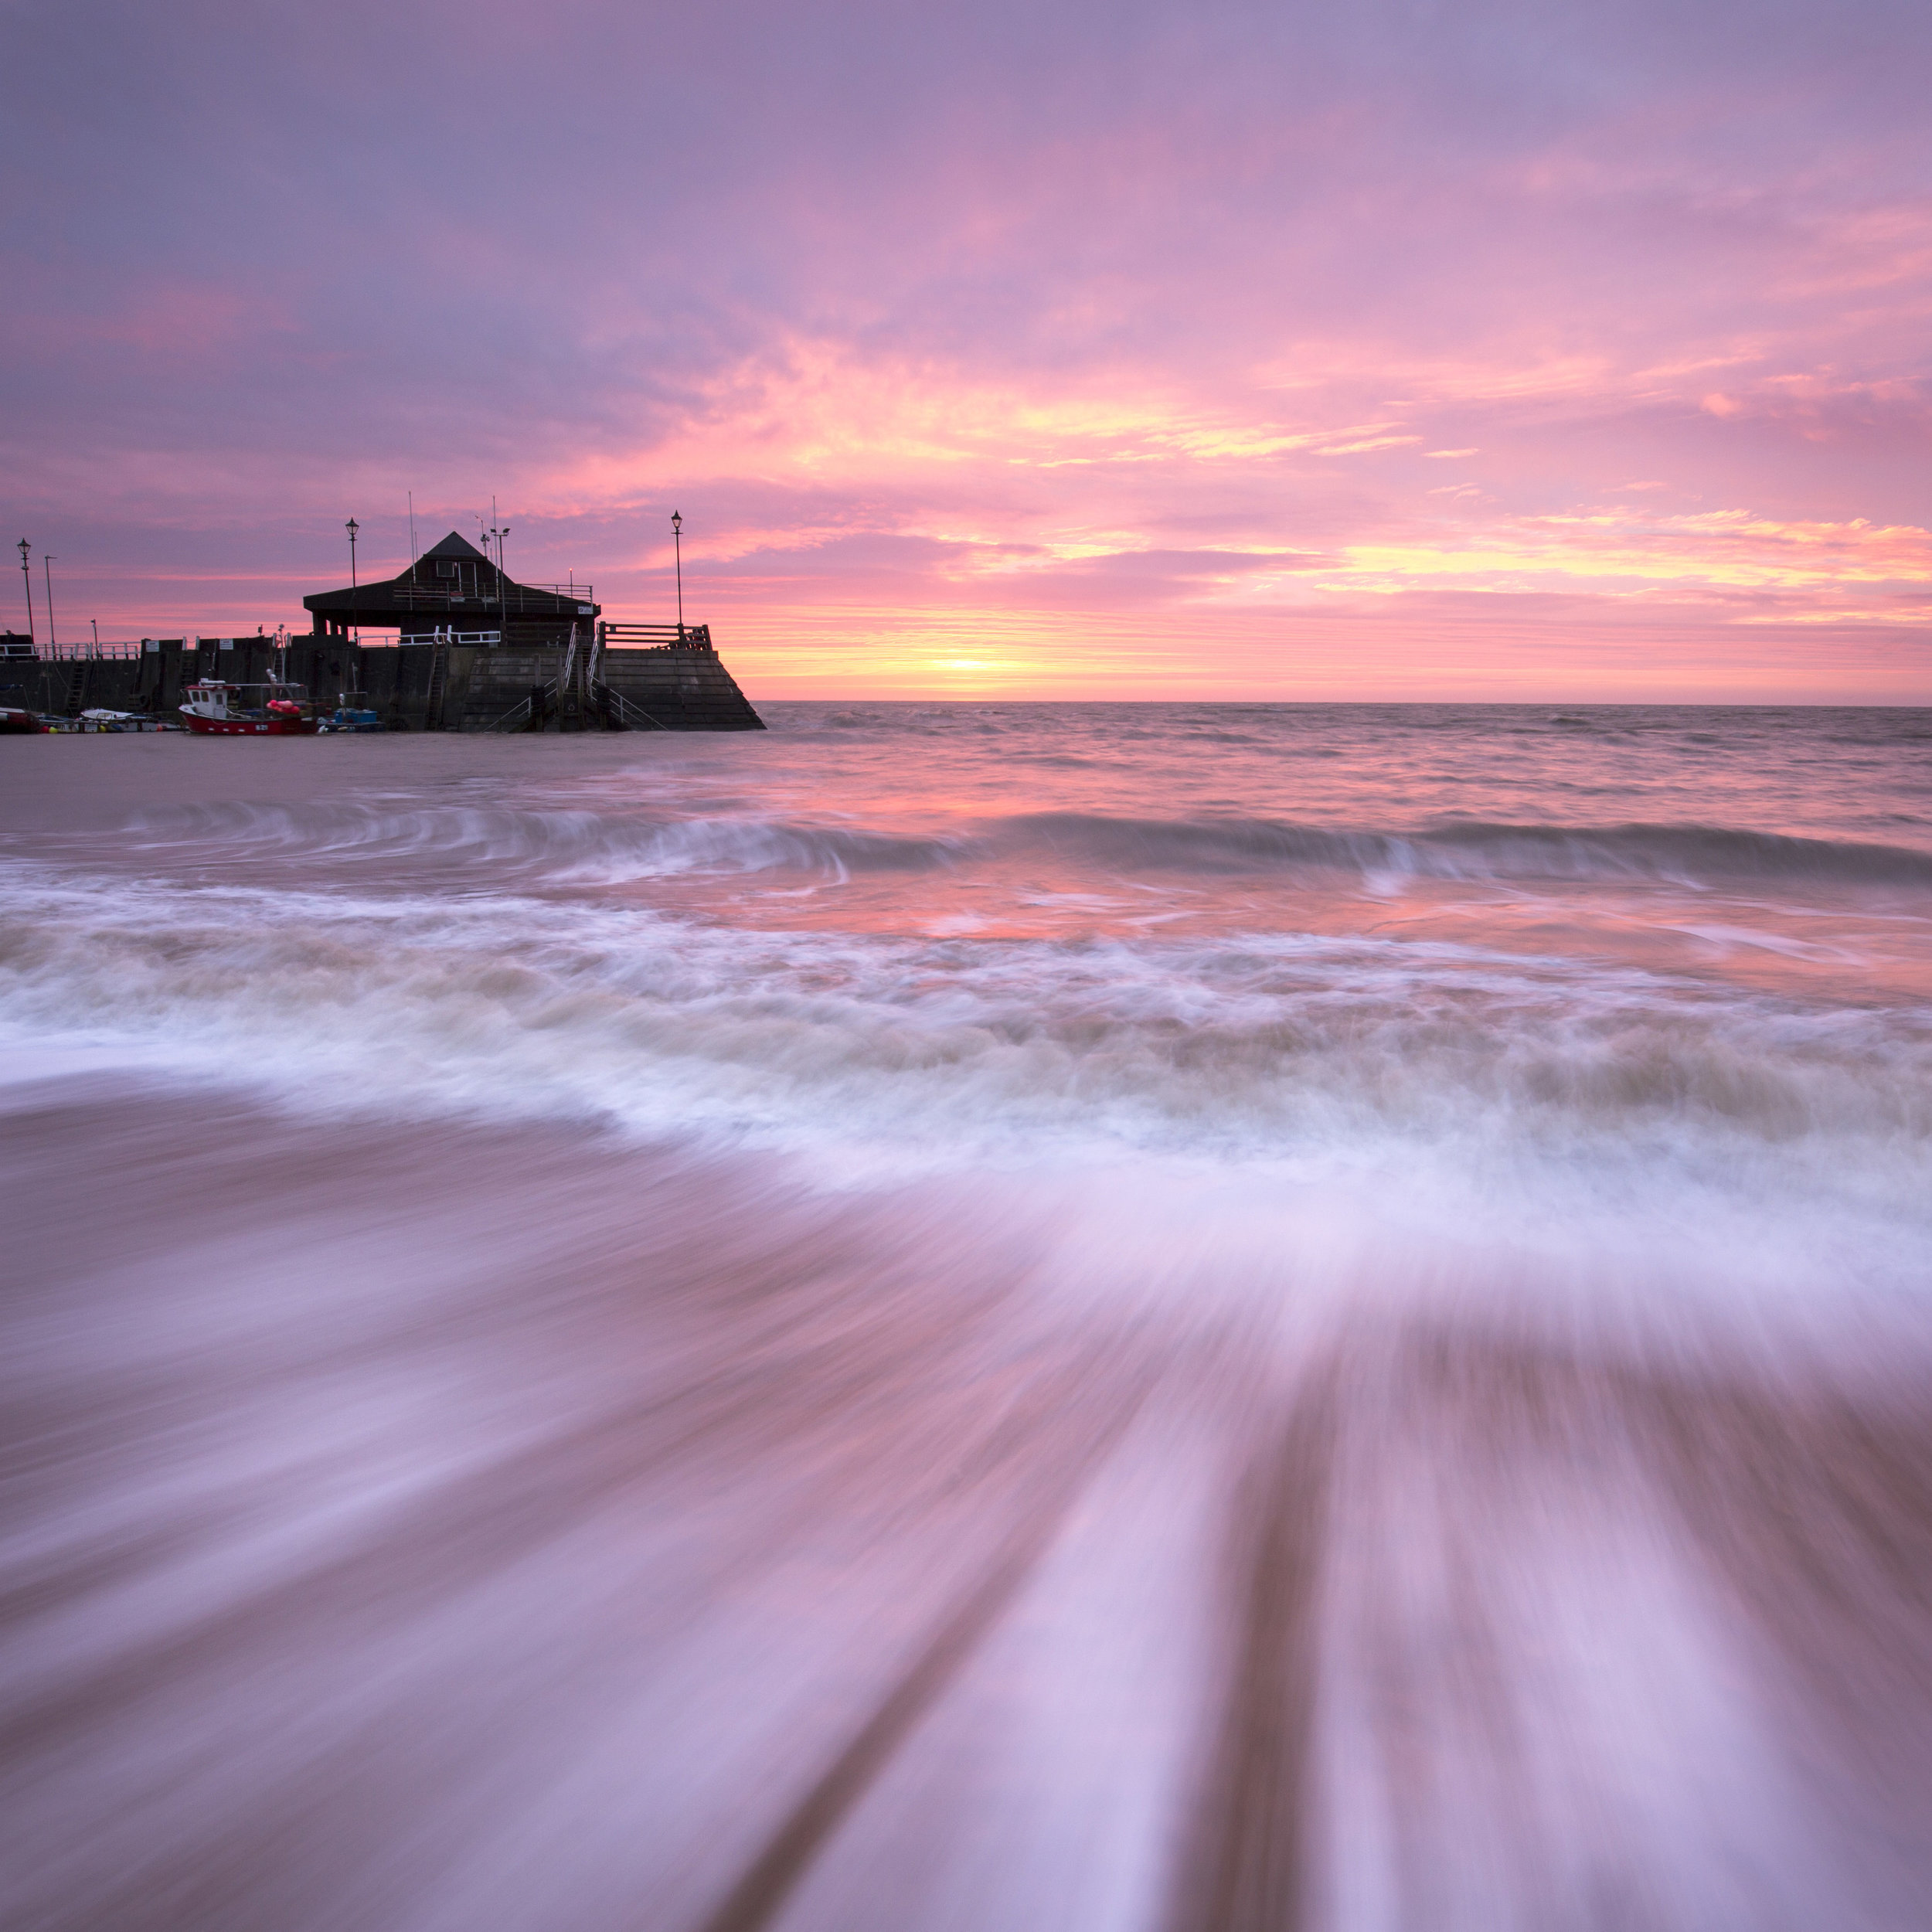 Enter the Broadstairs Online Gallery here.